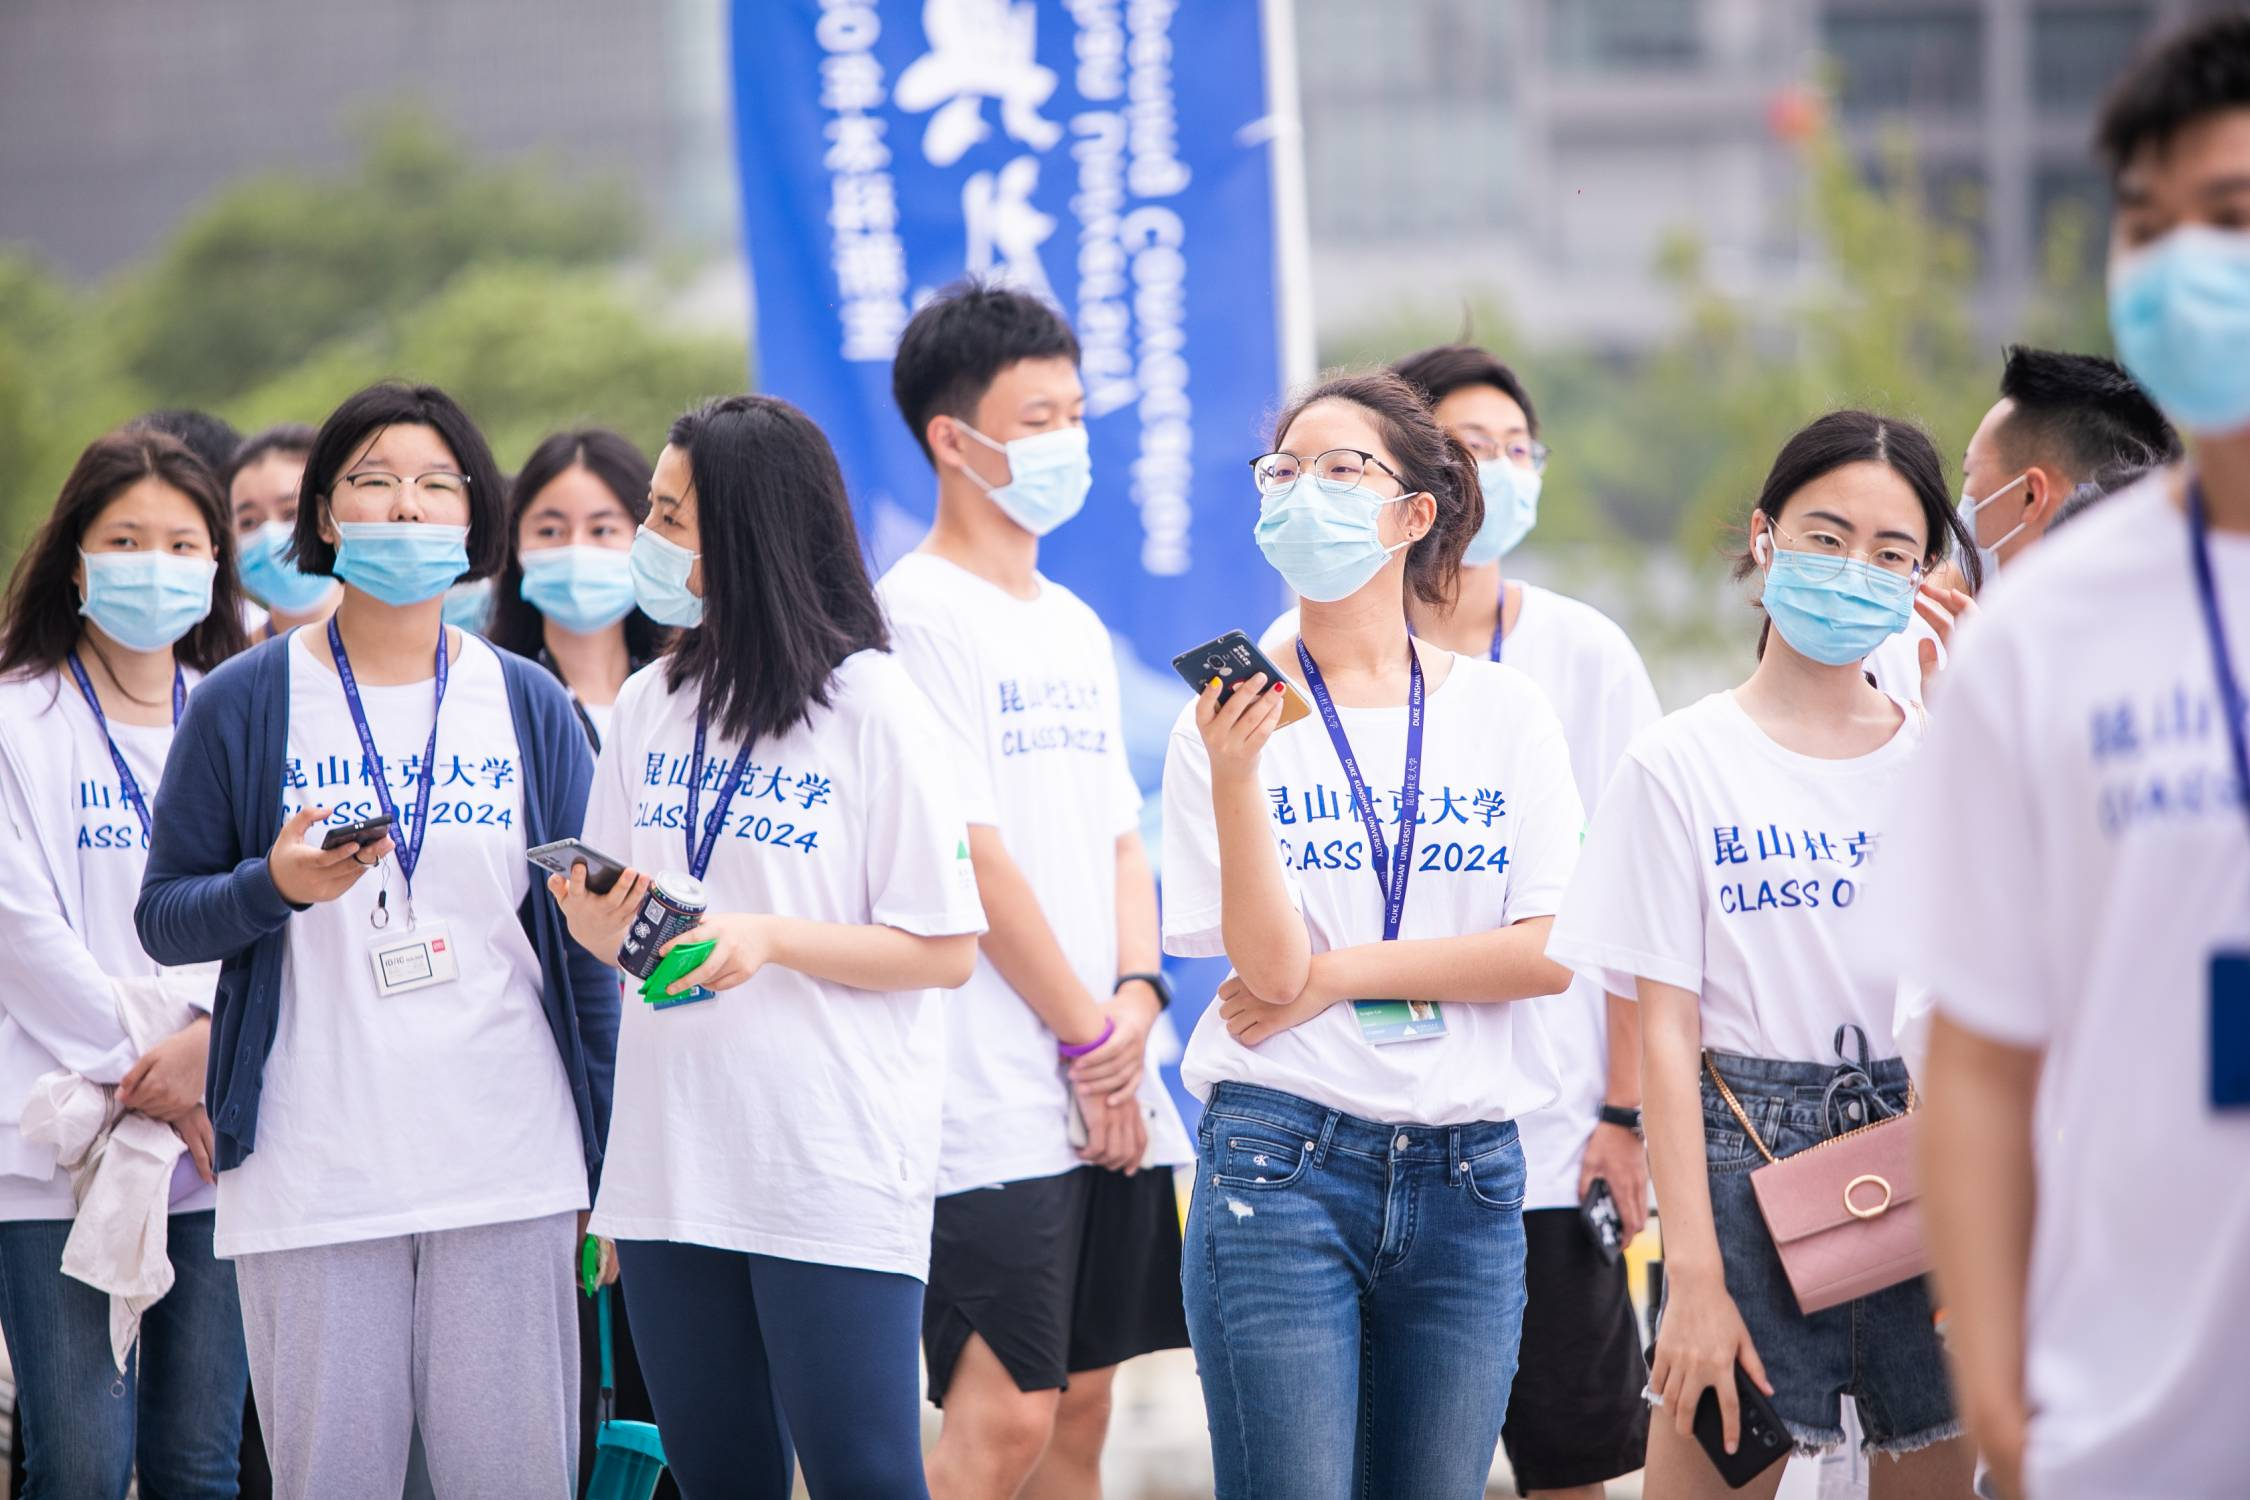 Students wearing masks to DKU Convocation.